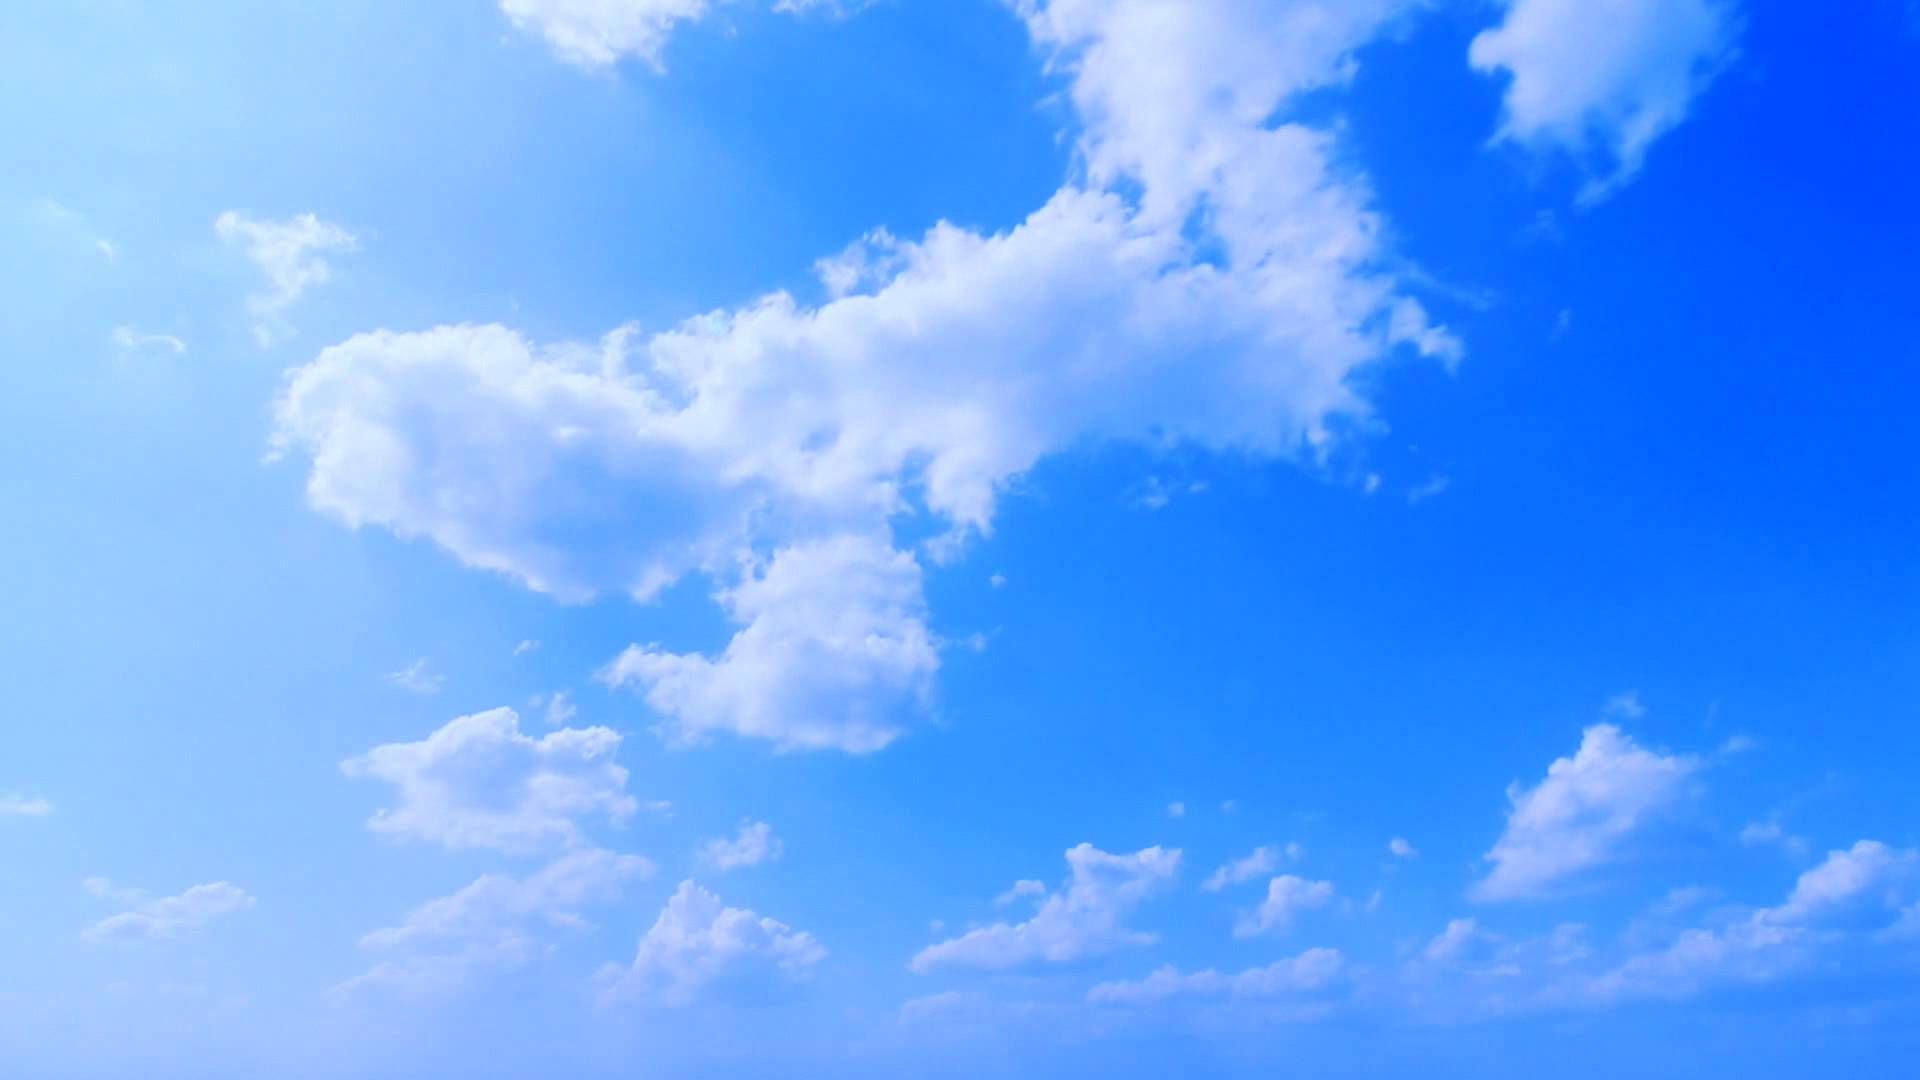 Sky Background Hd Images Free Download